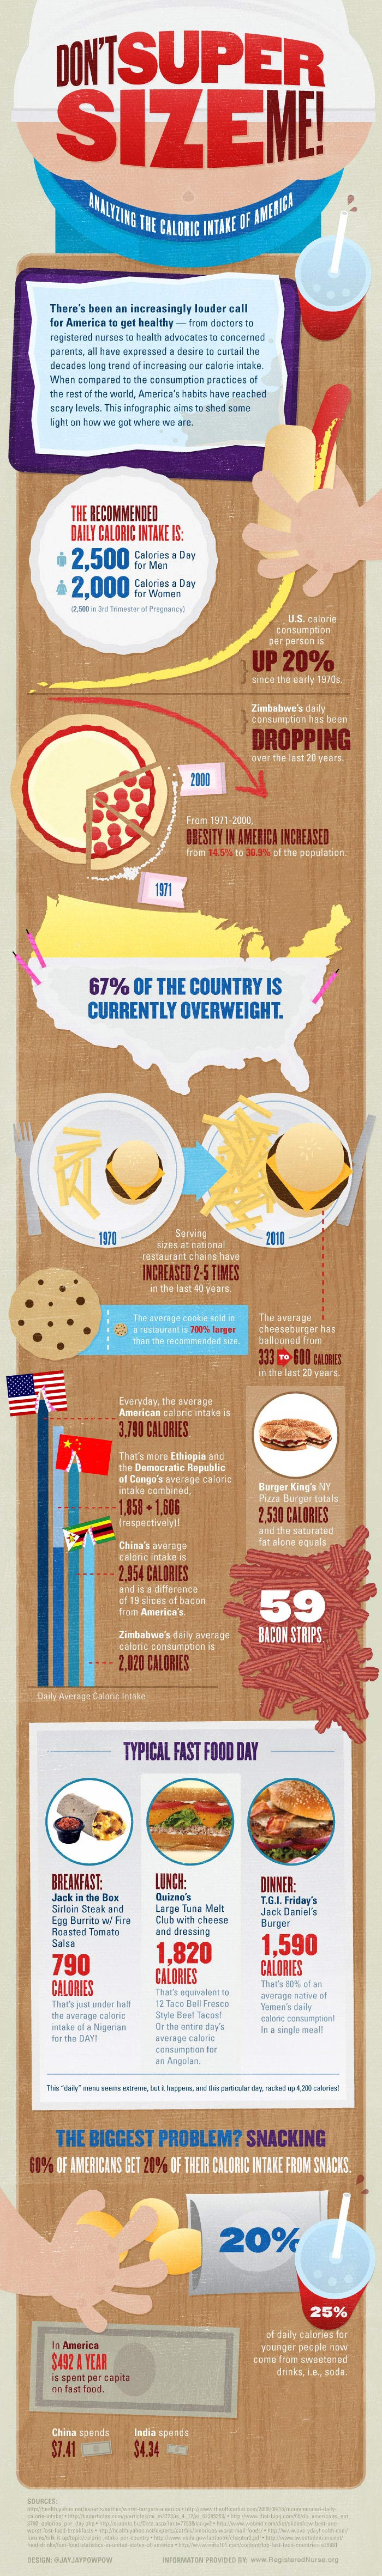 Don't SuperSize Me Infographic